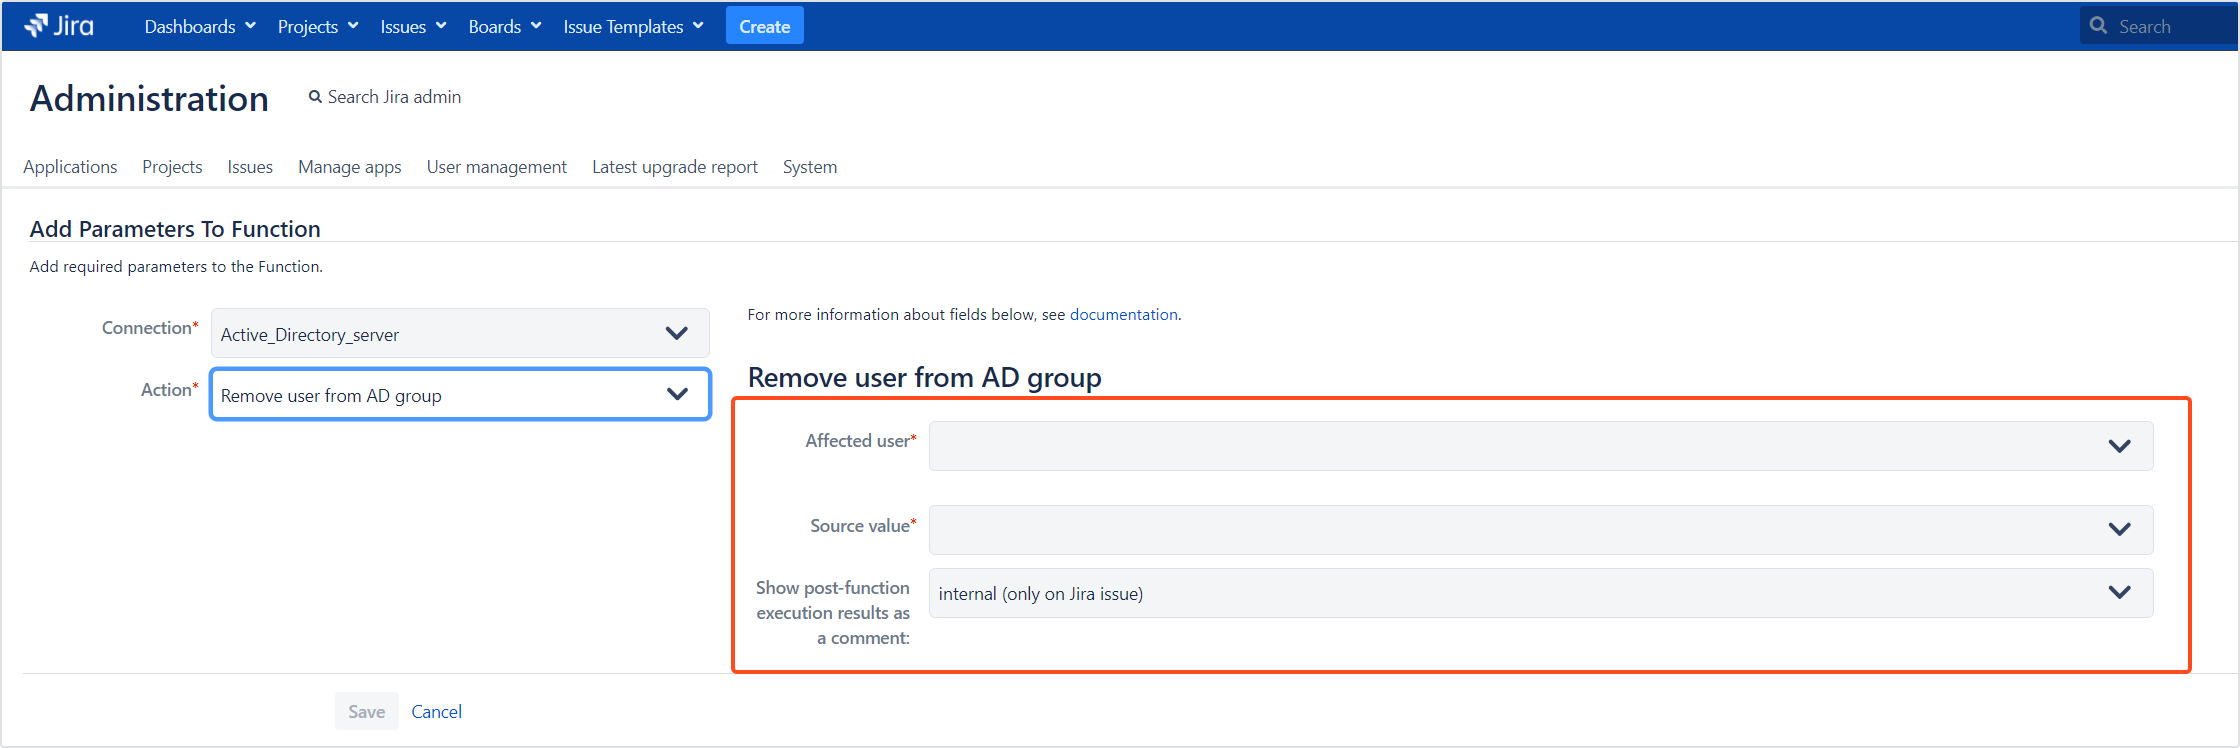 Active Directory Attributes Sync for Jira - Update Data: Remove user from AD group